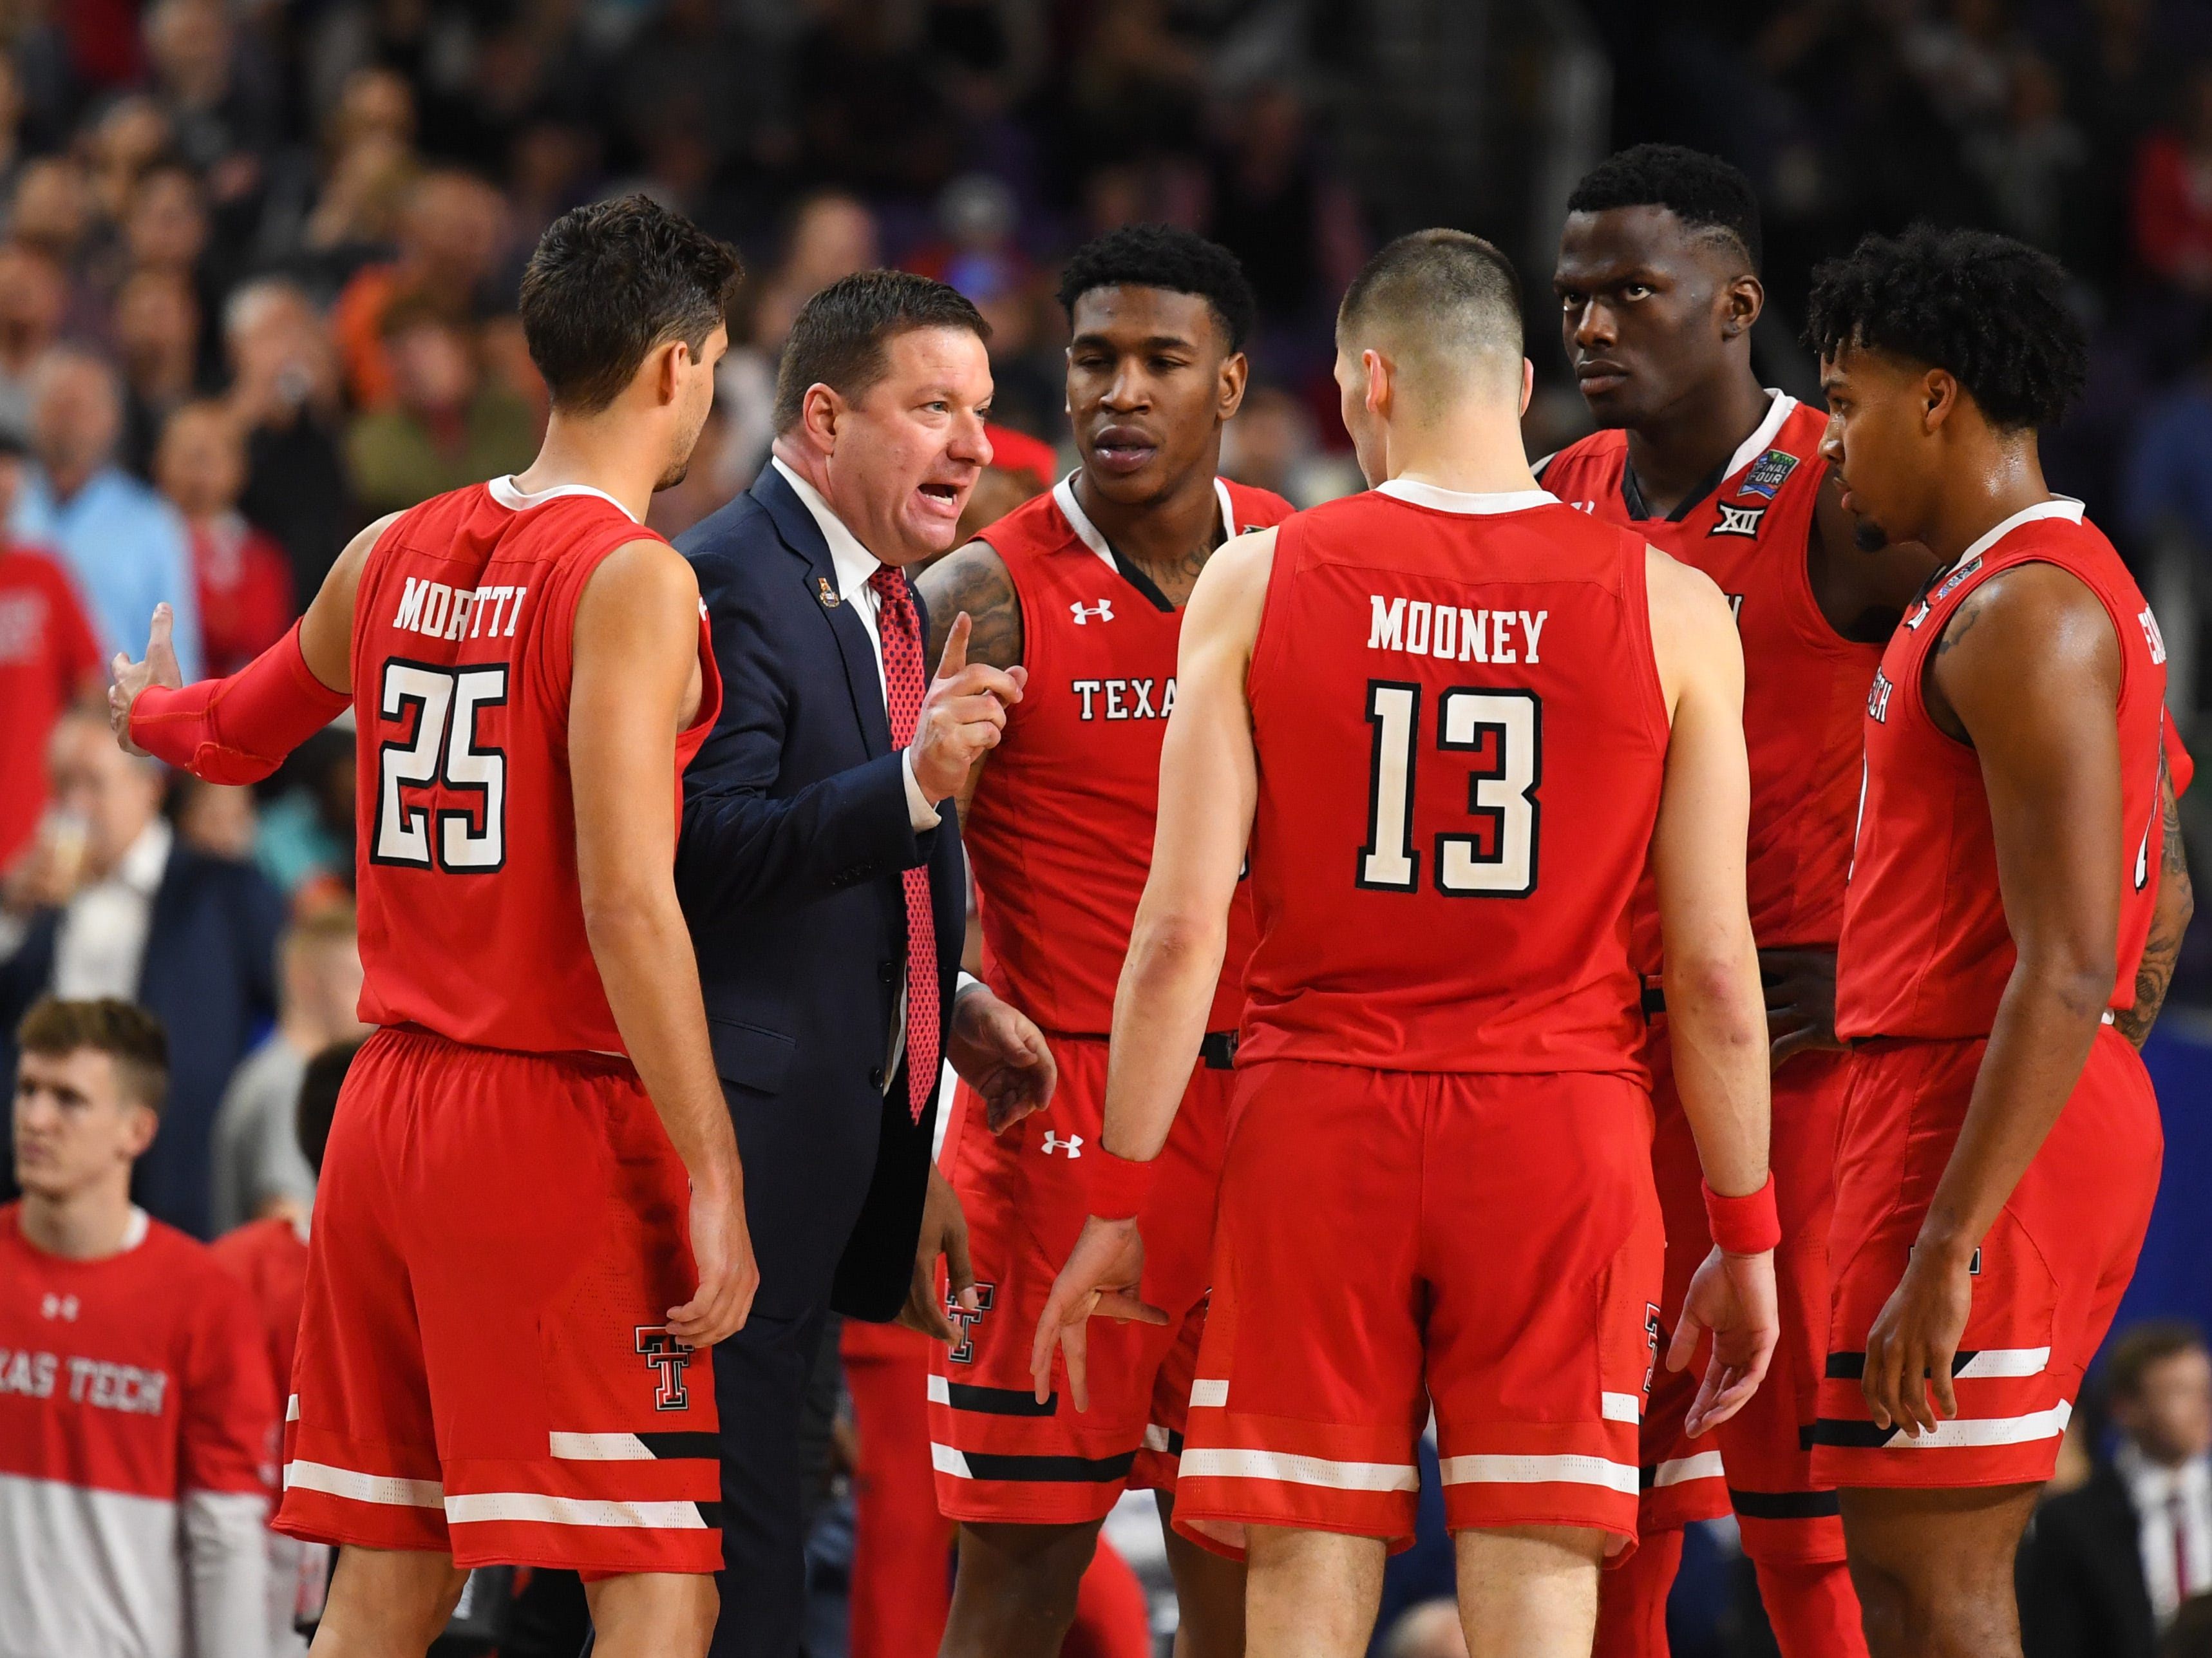 Apr 8, 2019; Minneapolis, MN, USA; Texas Tech Red Raiders head coach Chris Beard huddles with his team against the Virginia Cavaliers in the championship game of the 2019 men's Final Four at US Bank Stadium. Mandatory Credit: Robert Deutsch-USA TODAY Sports